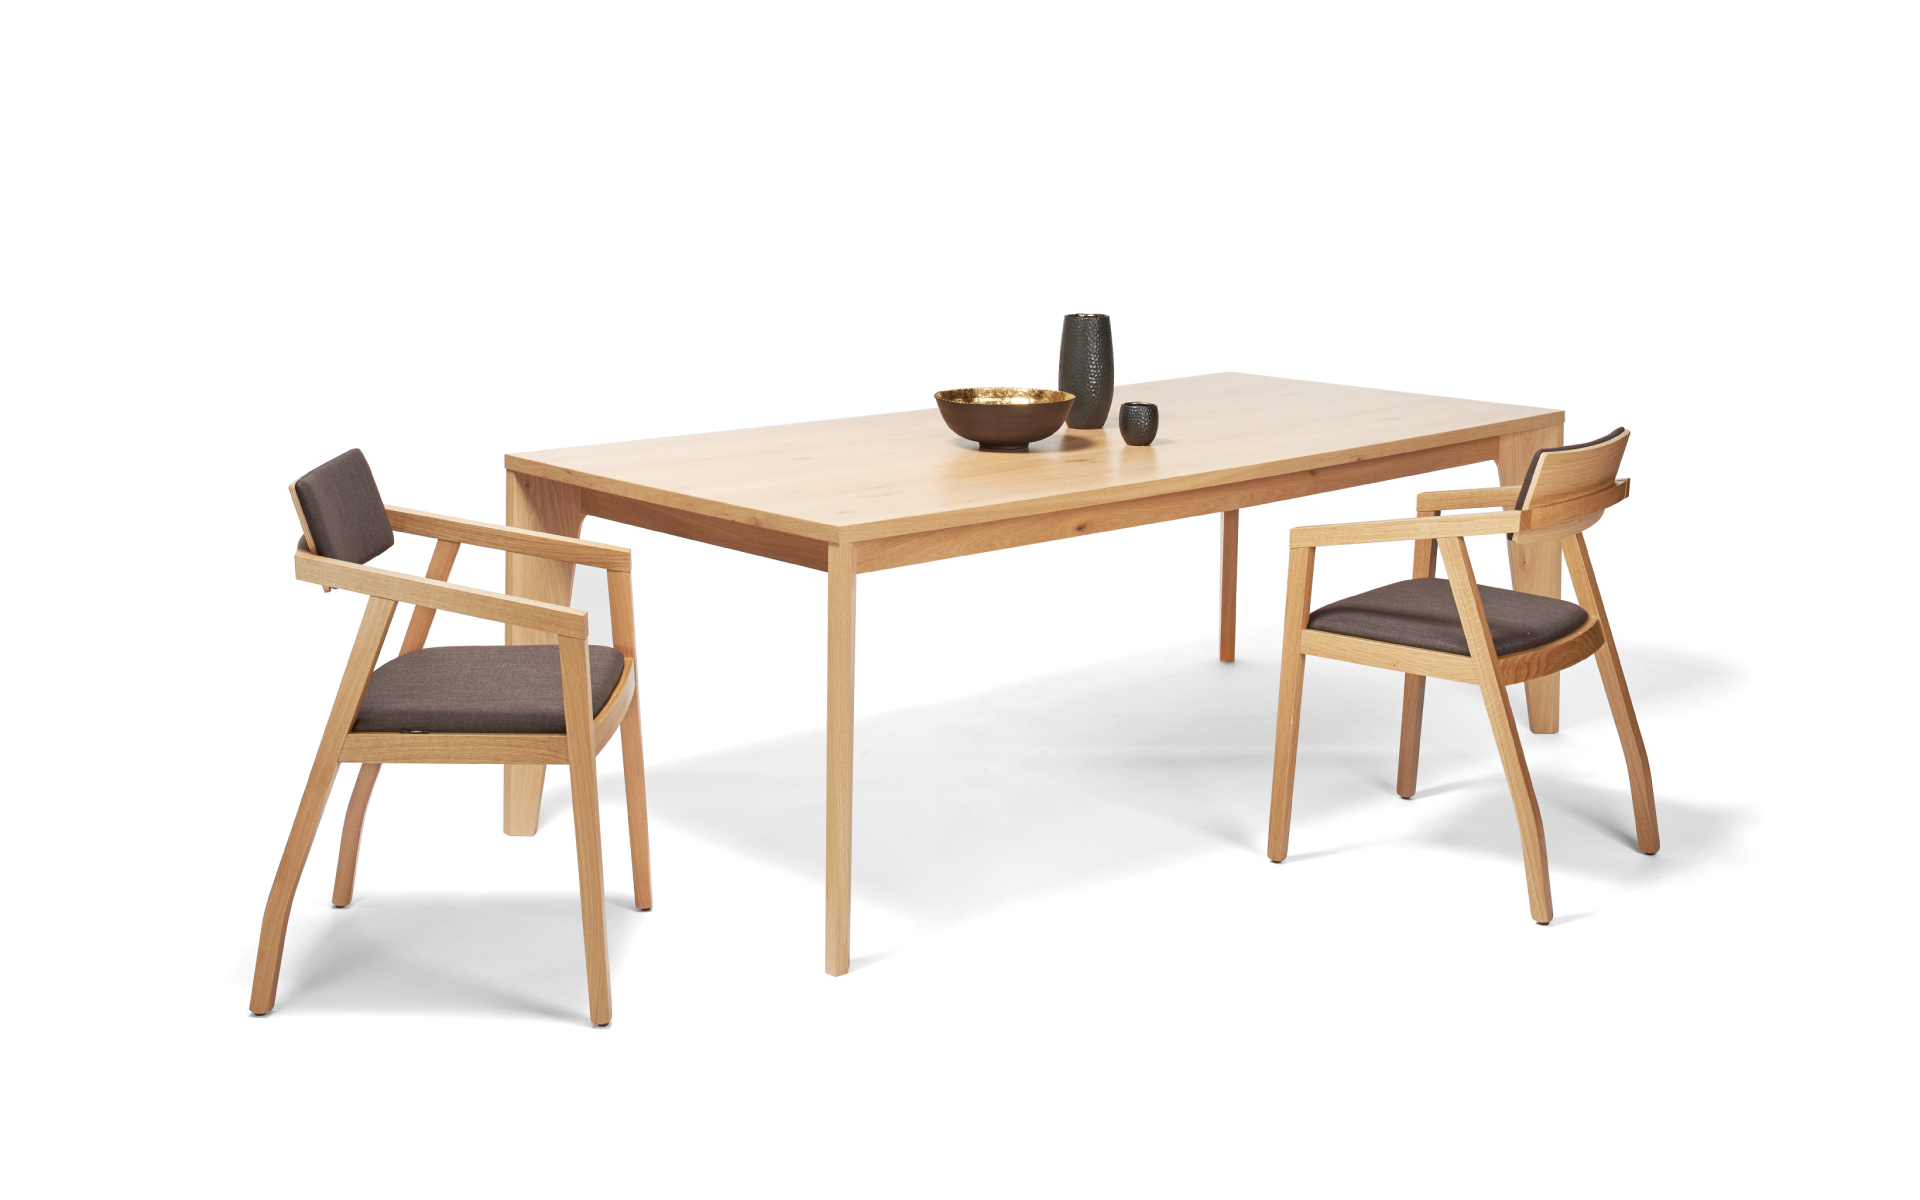 JS32 dining table